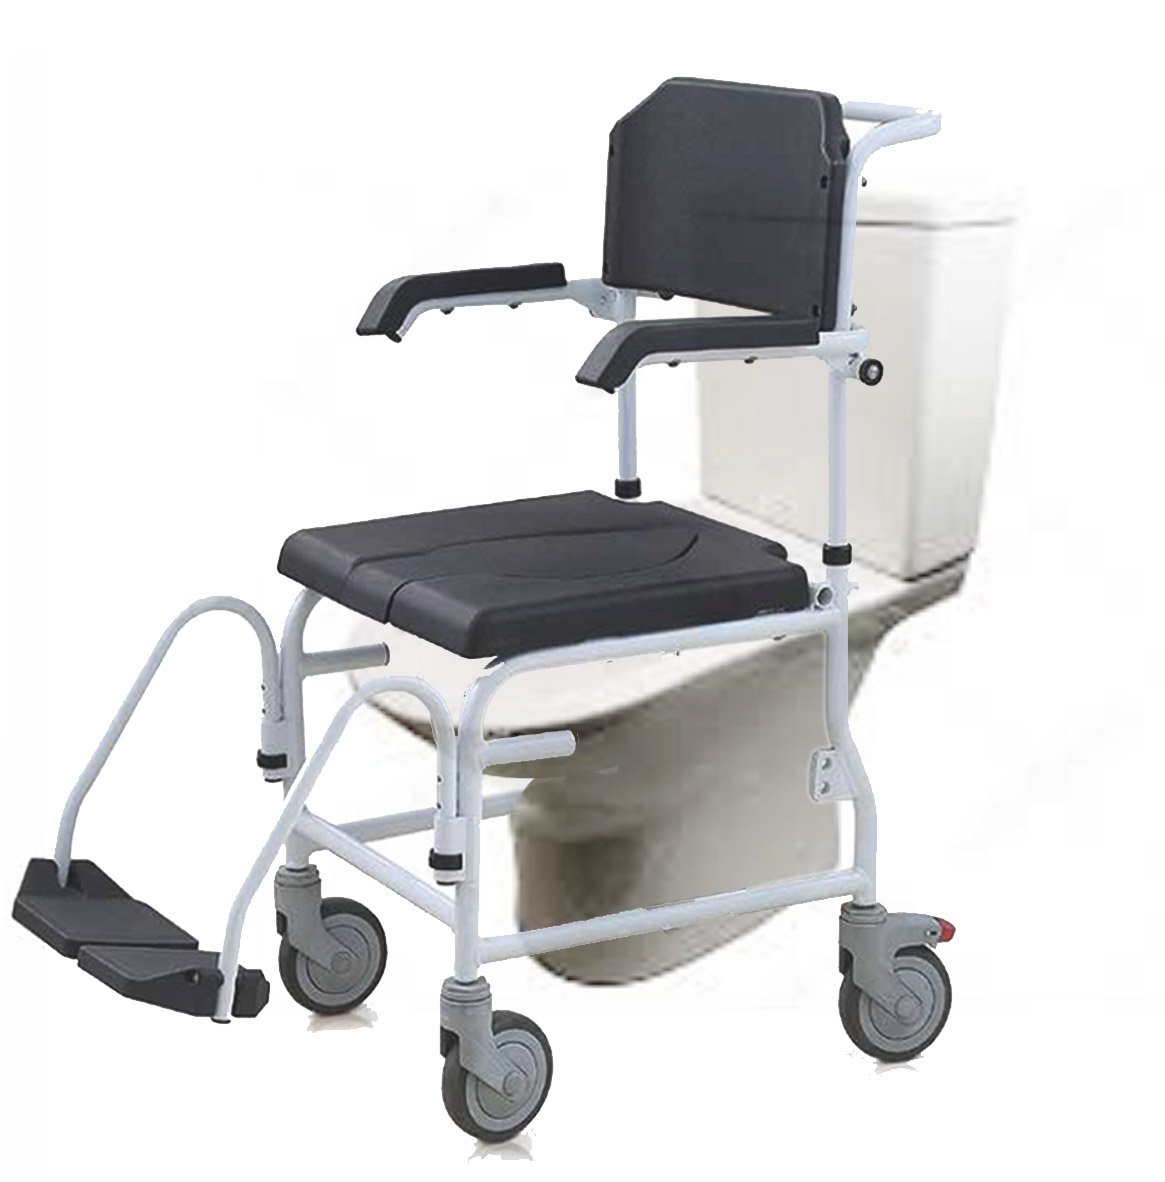 Commode And Shower Chair With Footrests Hct3002  Commode